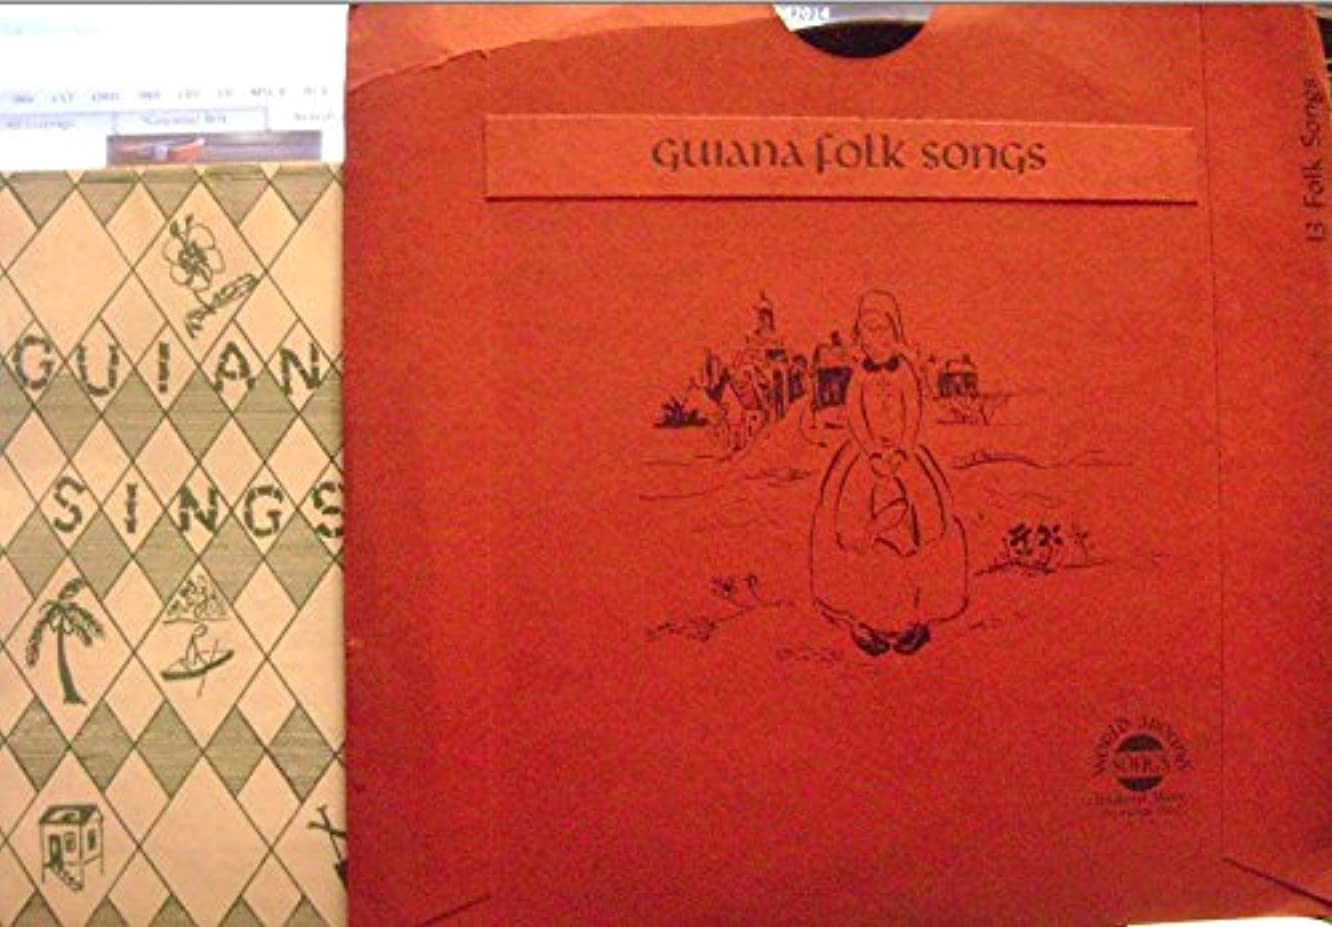 British Guiana Folk Songs 7